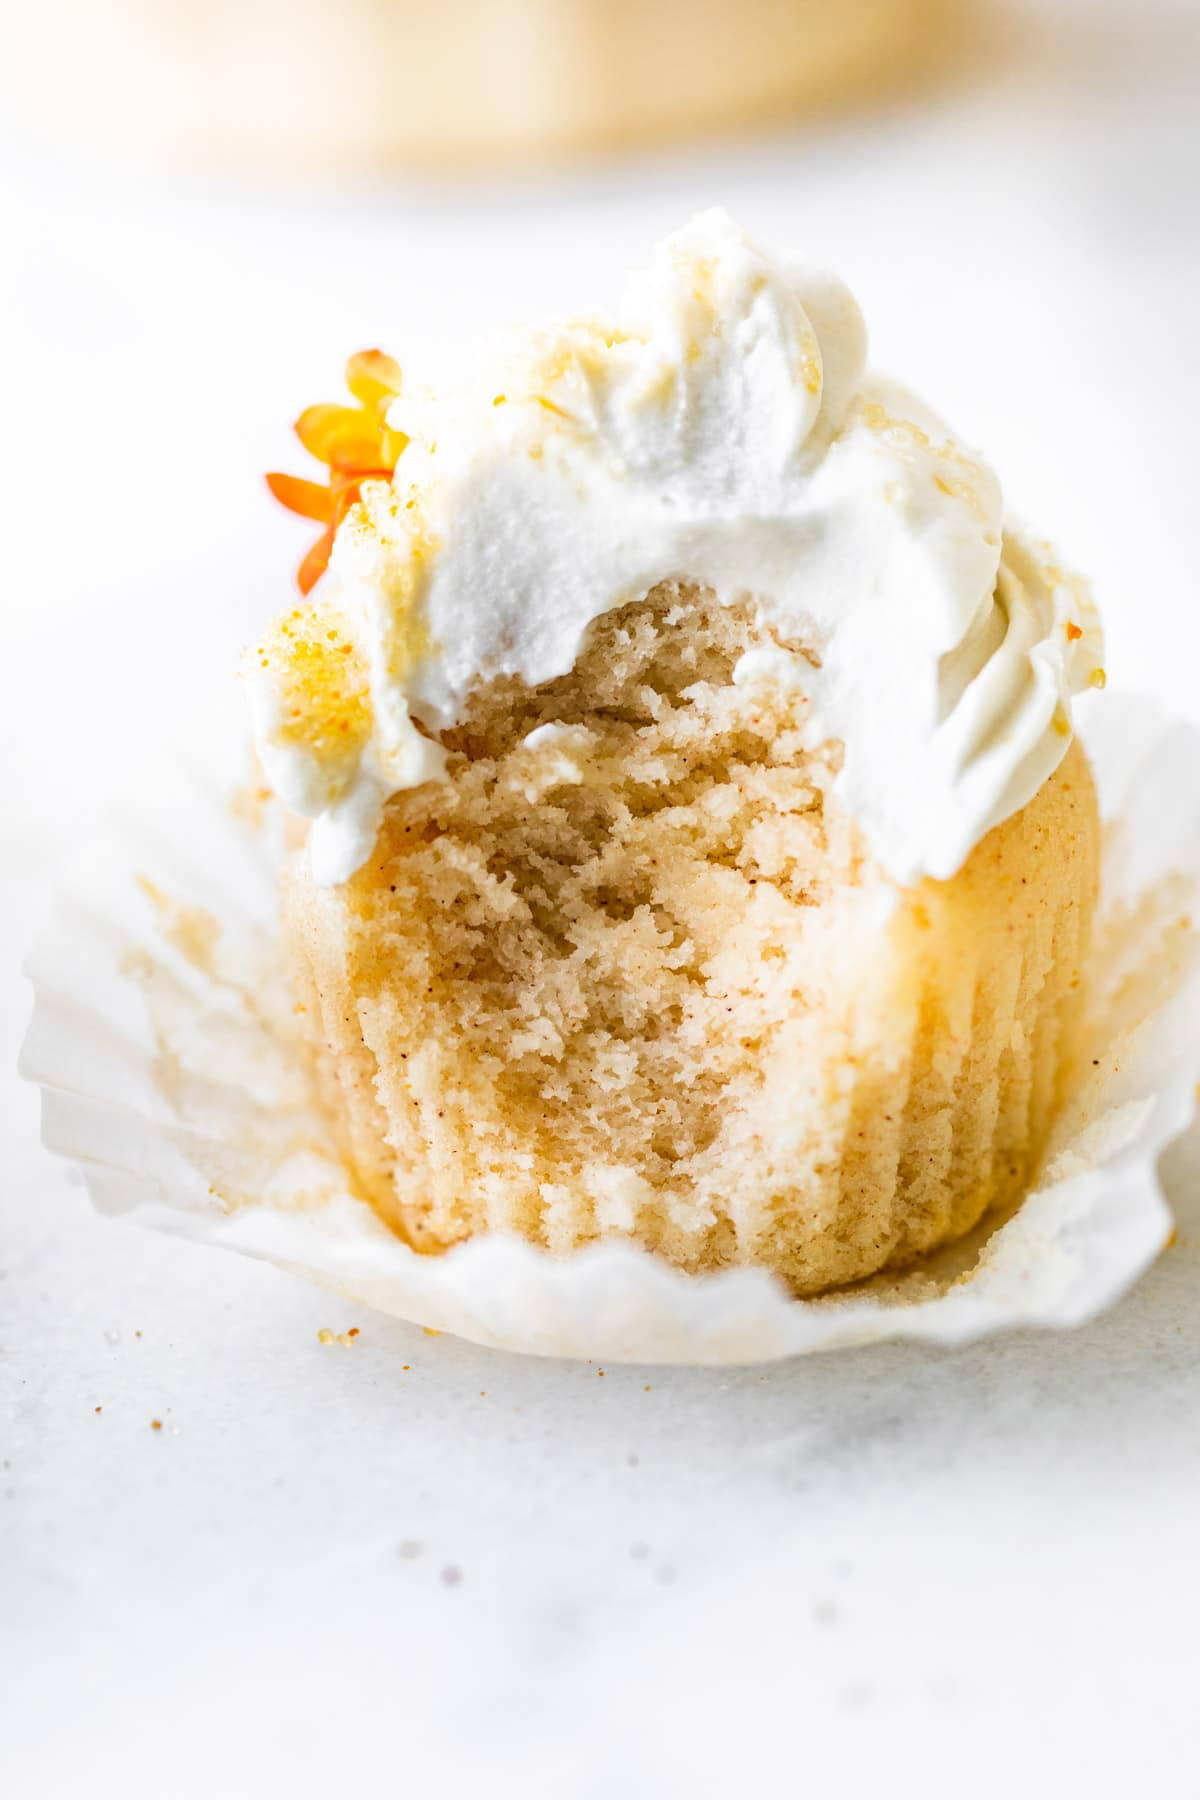 vanilla cupcake with frosting (bite removed from it